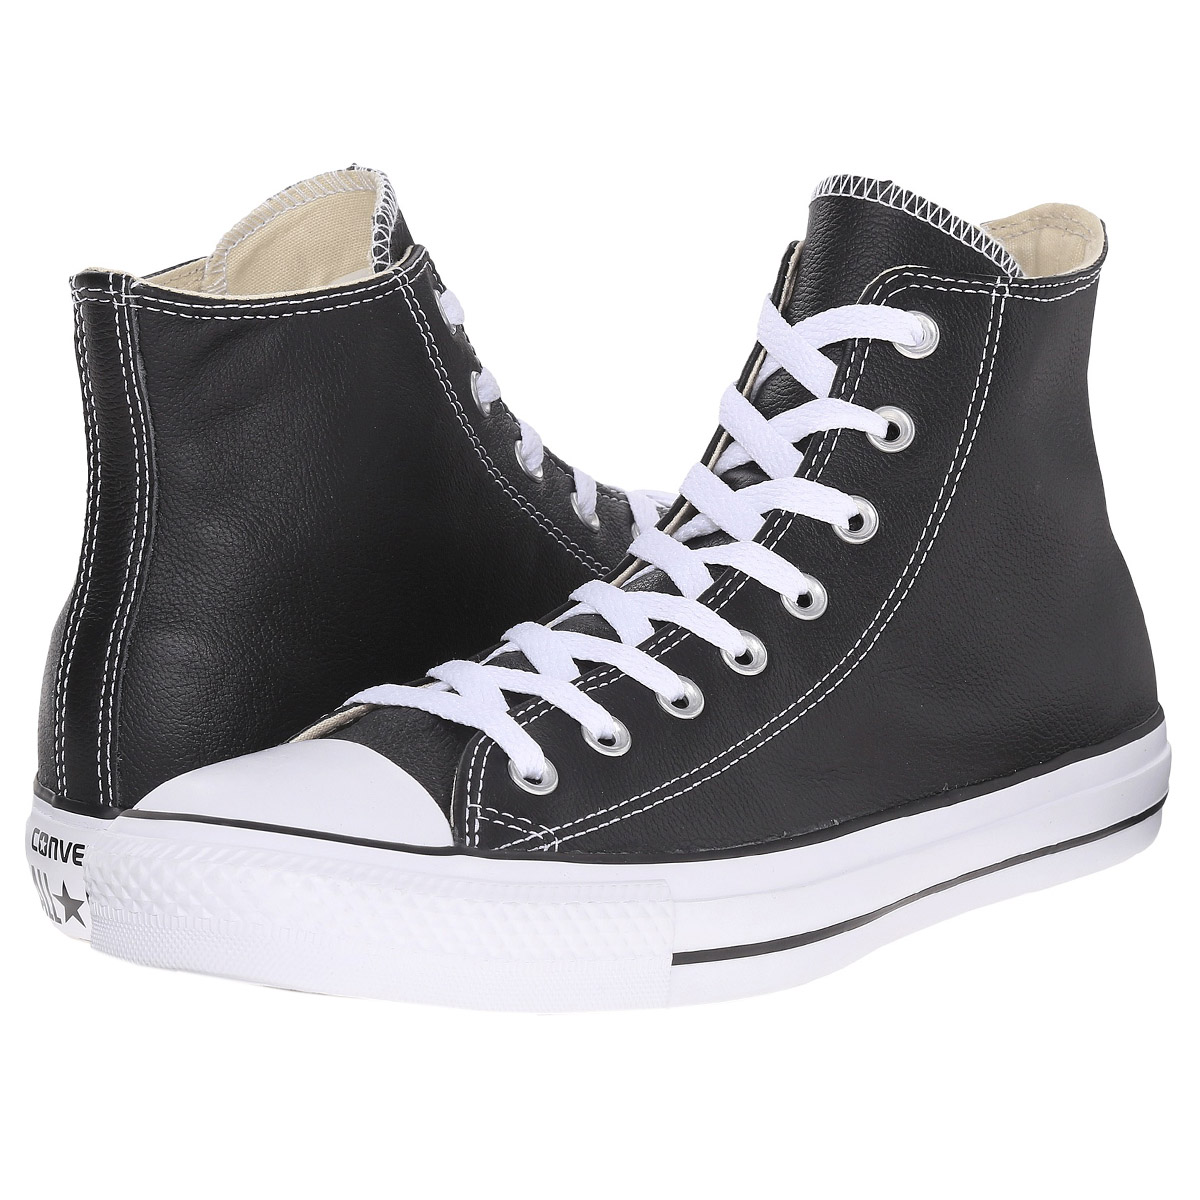 converse chuck taylor all star hi leather damen schuhe. Black Bedroom Furniture Sets. Home Design Ideas